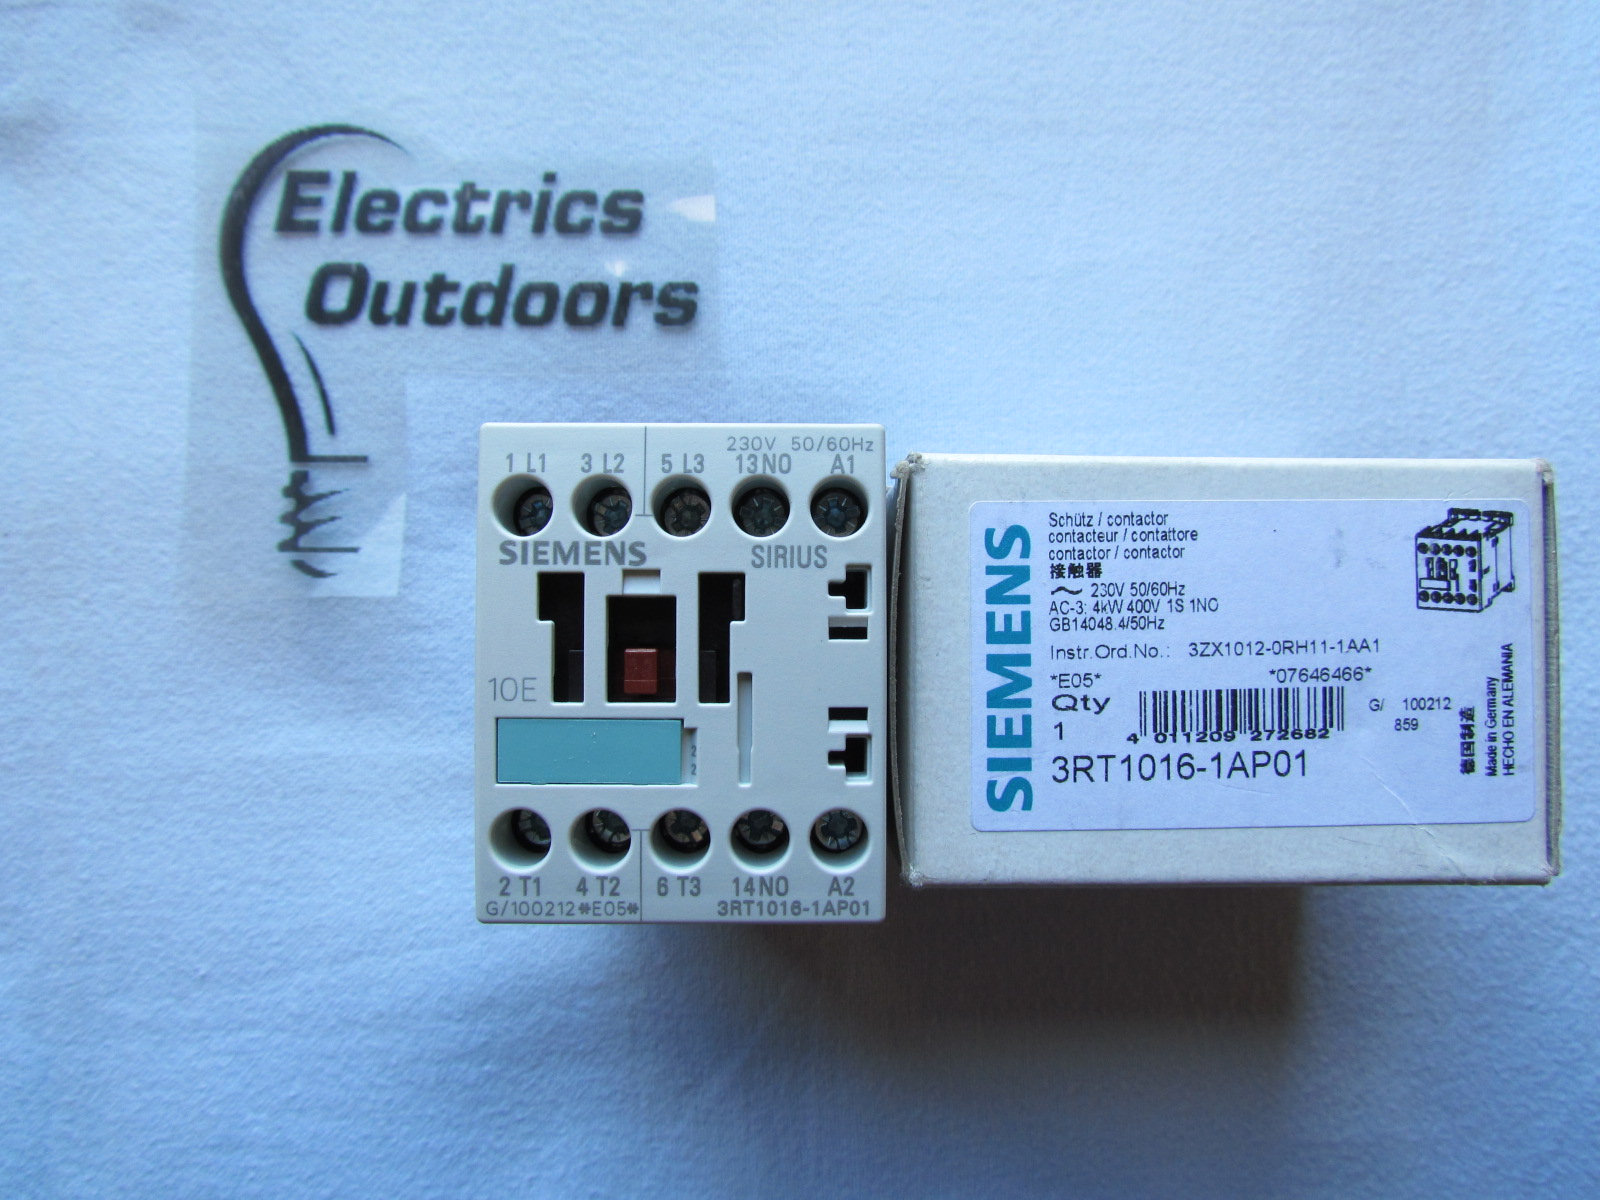 SIEMENS CONTACTOR AC-3 4kW 400V 230V 3RT1016-1AP01